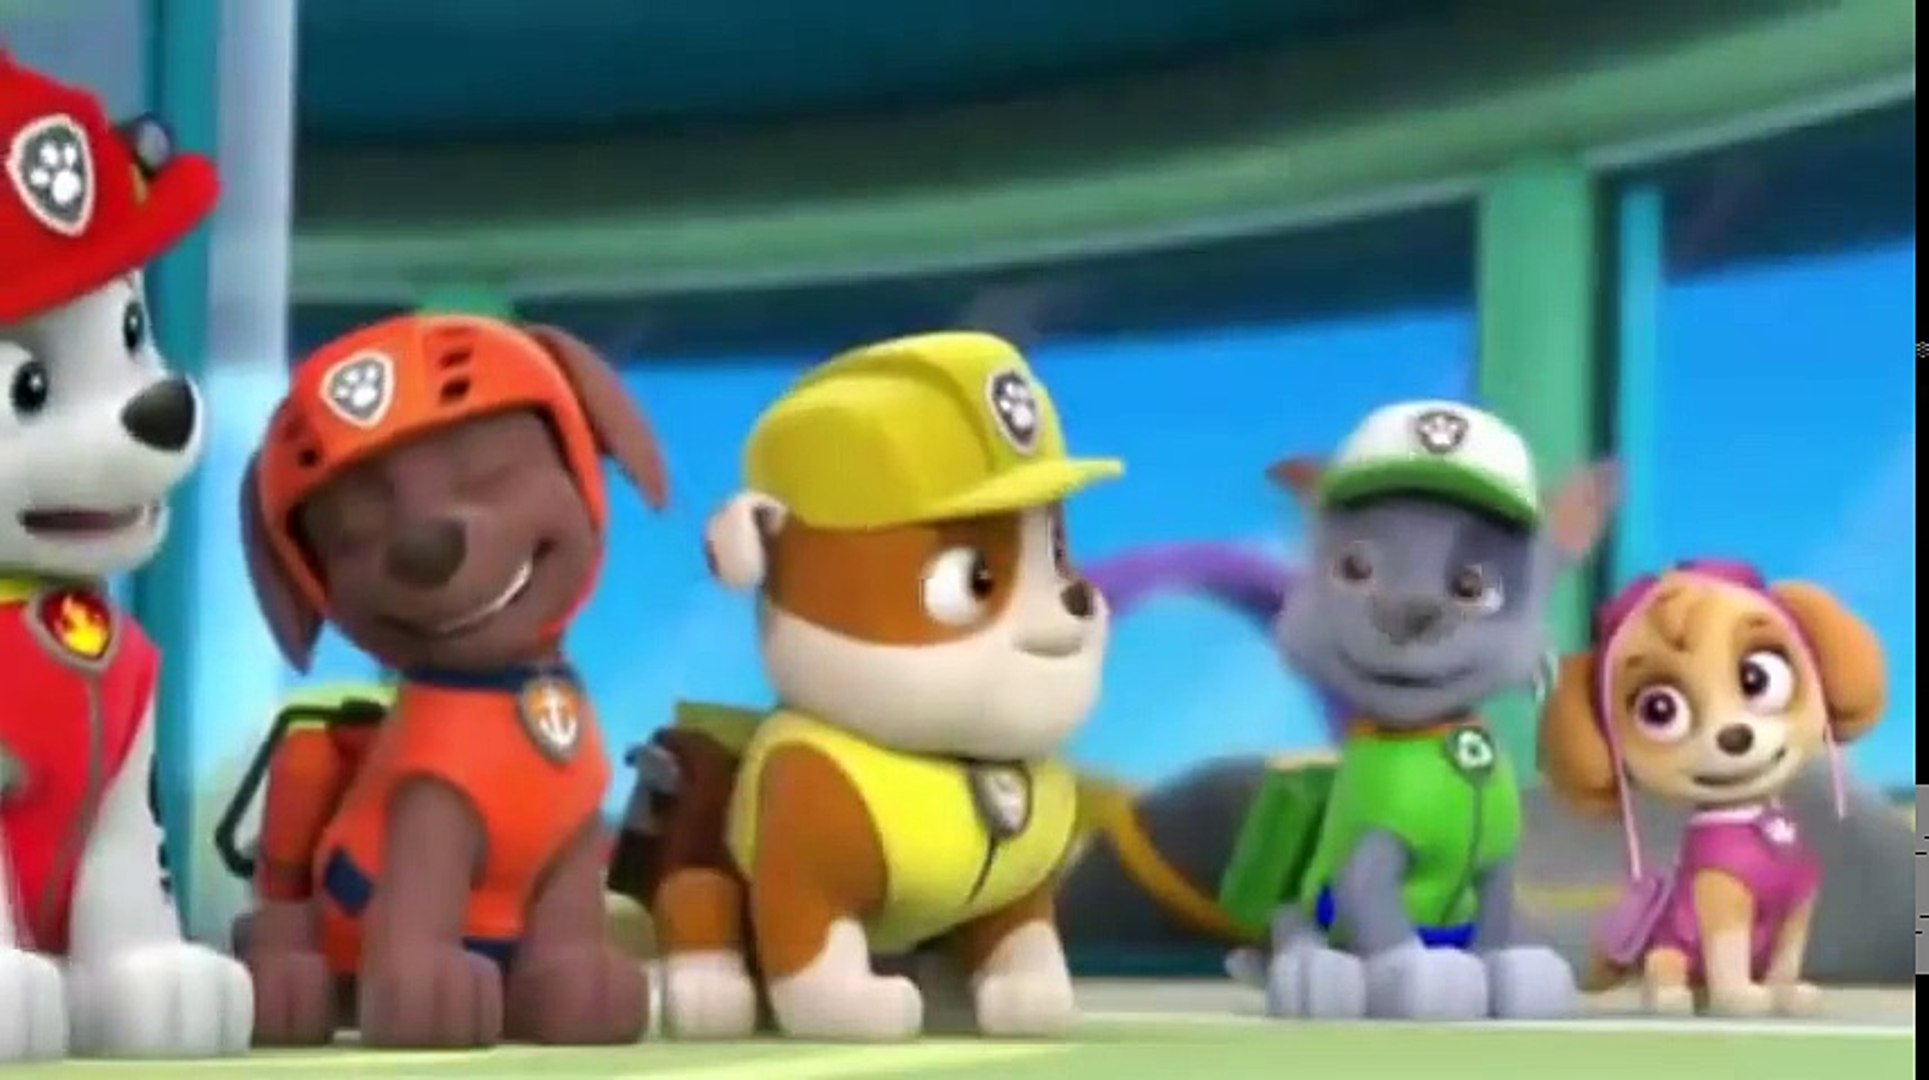 ♥♥ PAW Patrol (S01E22b) - Pups Save Ryder (Full Episode) ♥♥